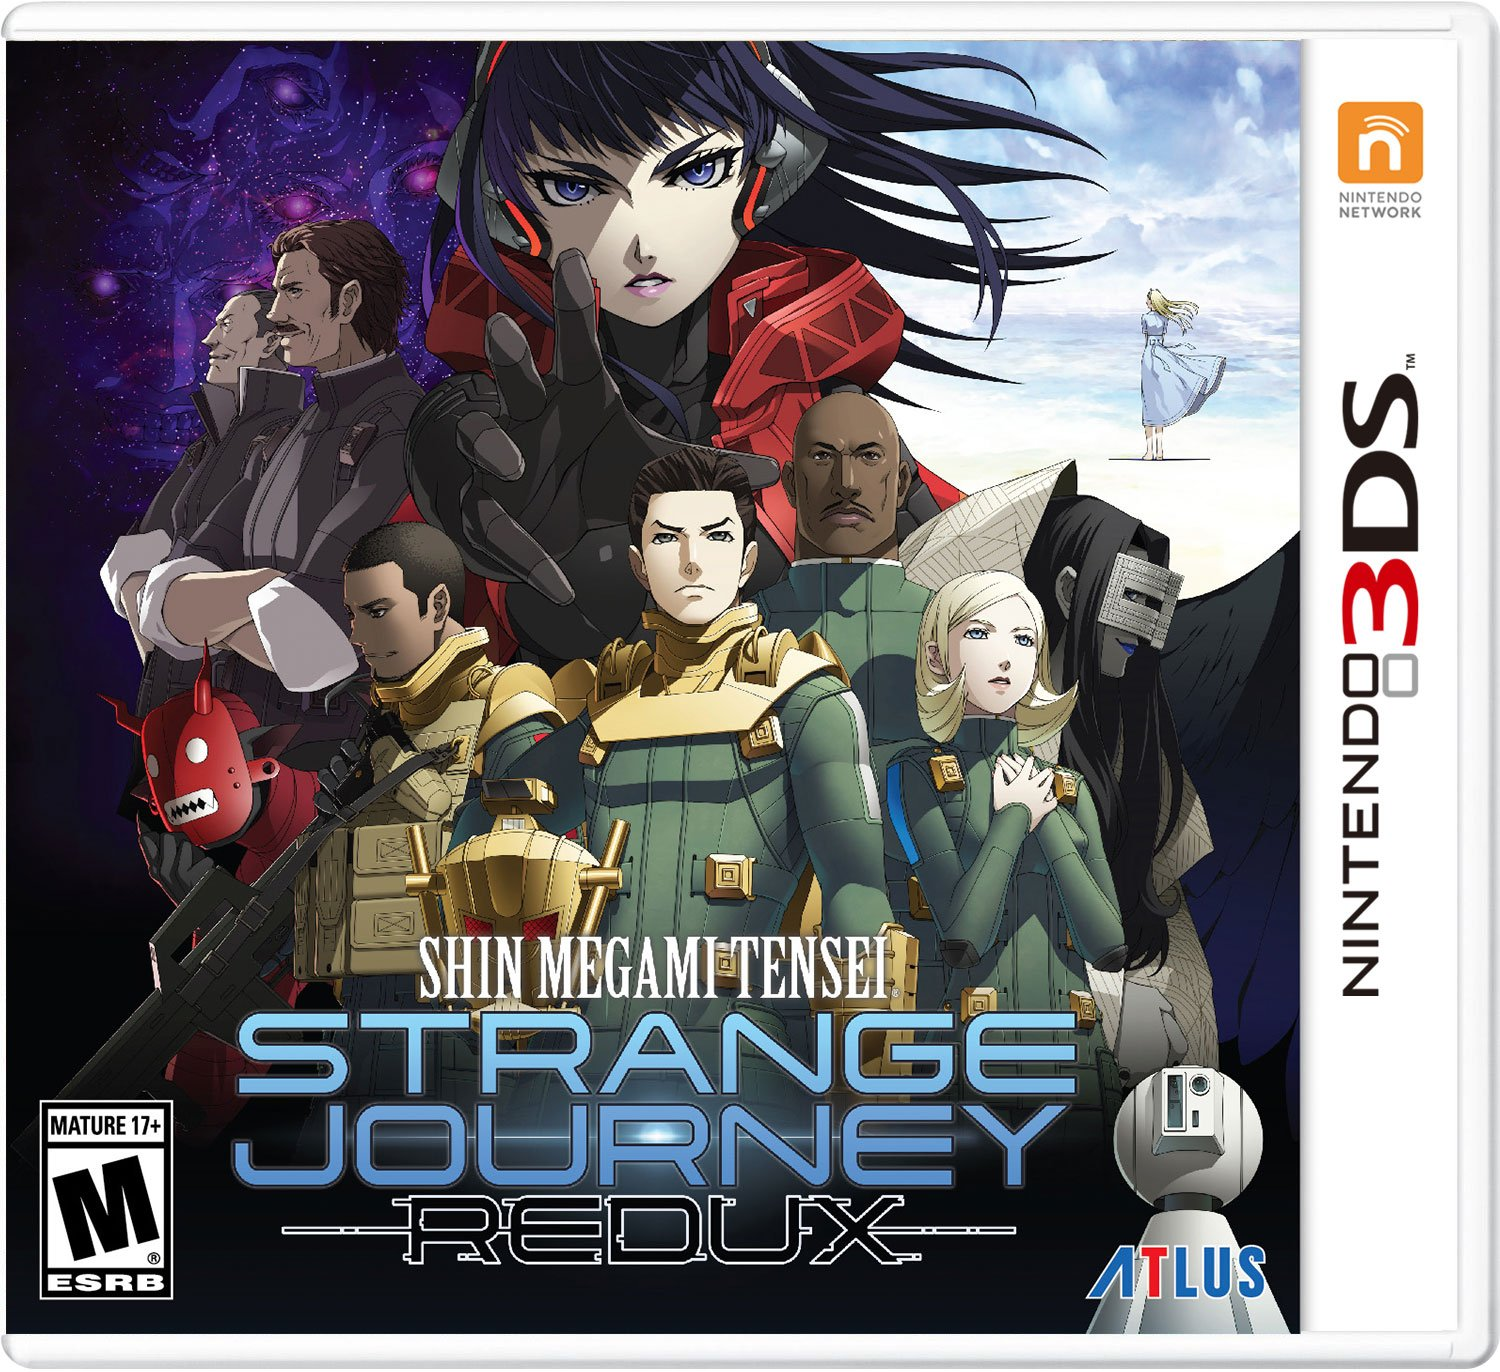 SMT-Strange-Journey-Box-Art_01-17-18.jpg